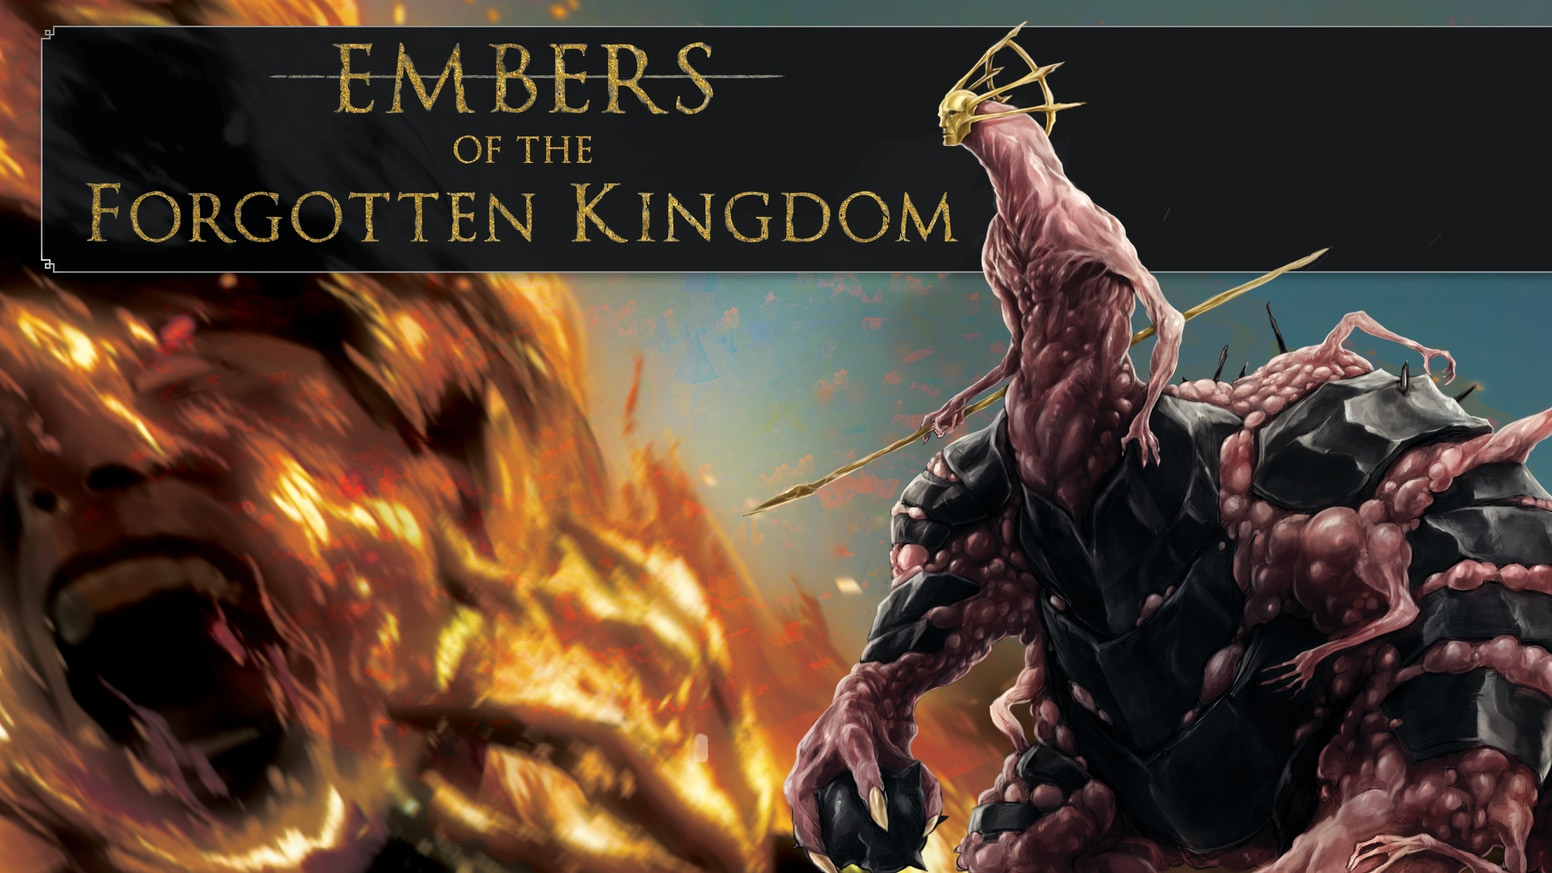 Embers of the Forgotten Kingdom by Andreas Walters — Kickstarter